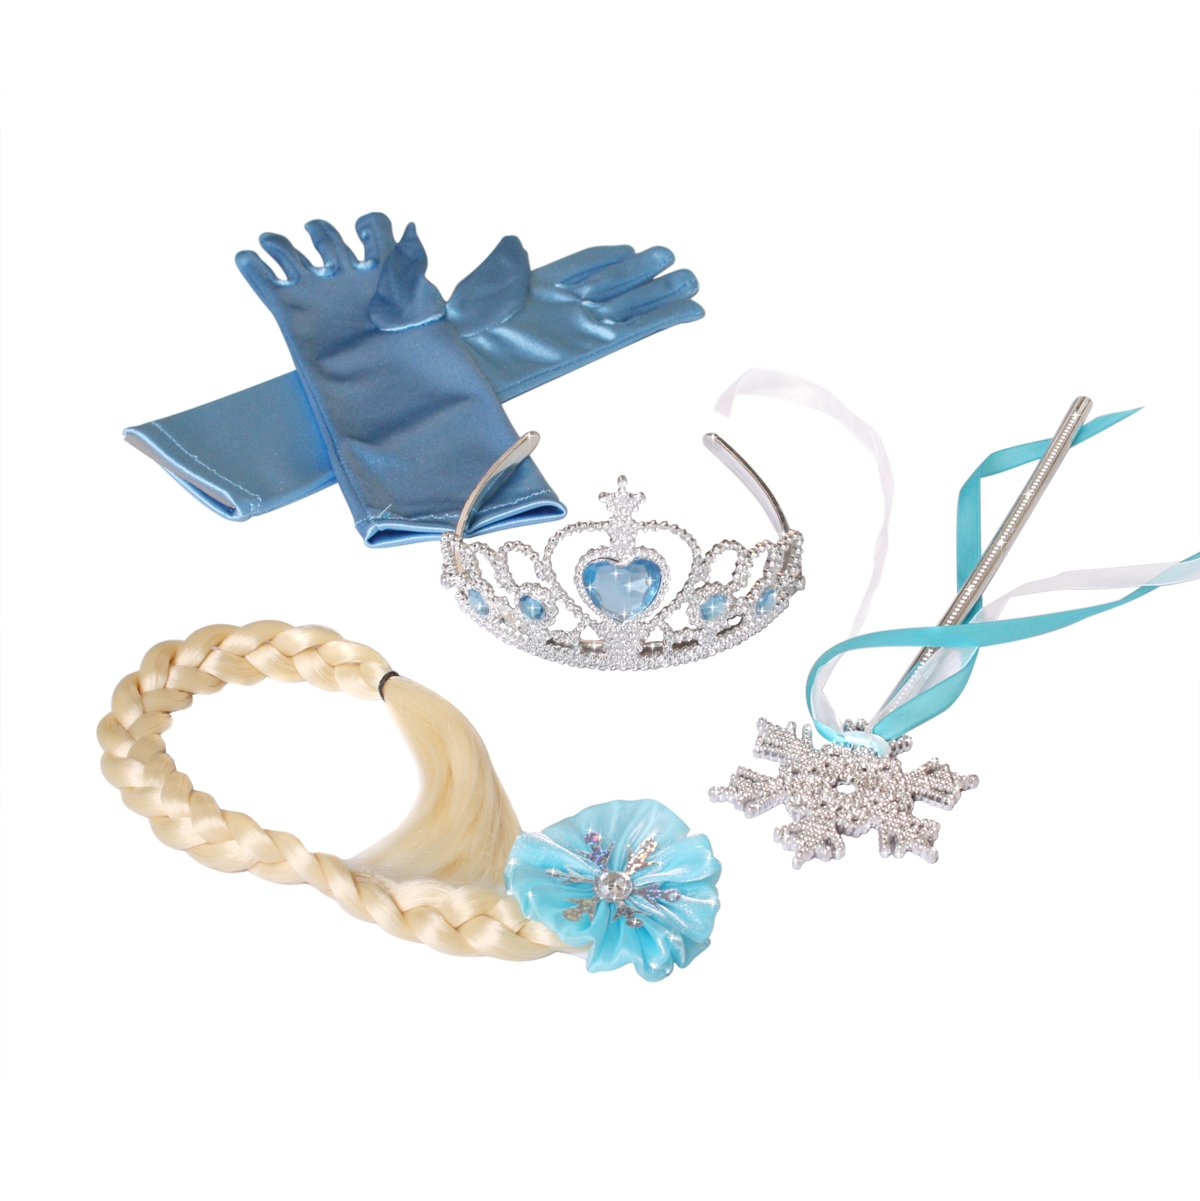 Frozen Elsa Princess Tiara Snowflake Wand Braid Hair Piece and Blue Gloves Set Heart To Heart